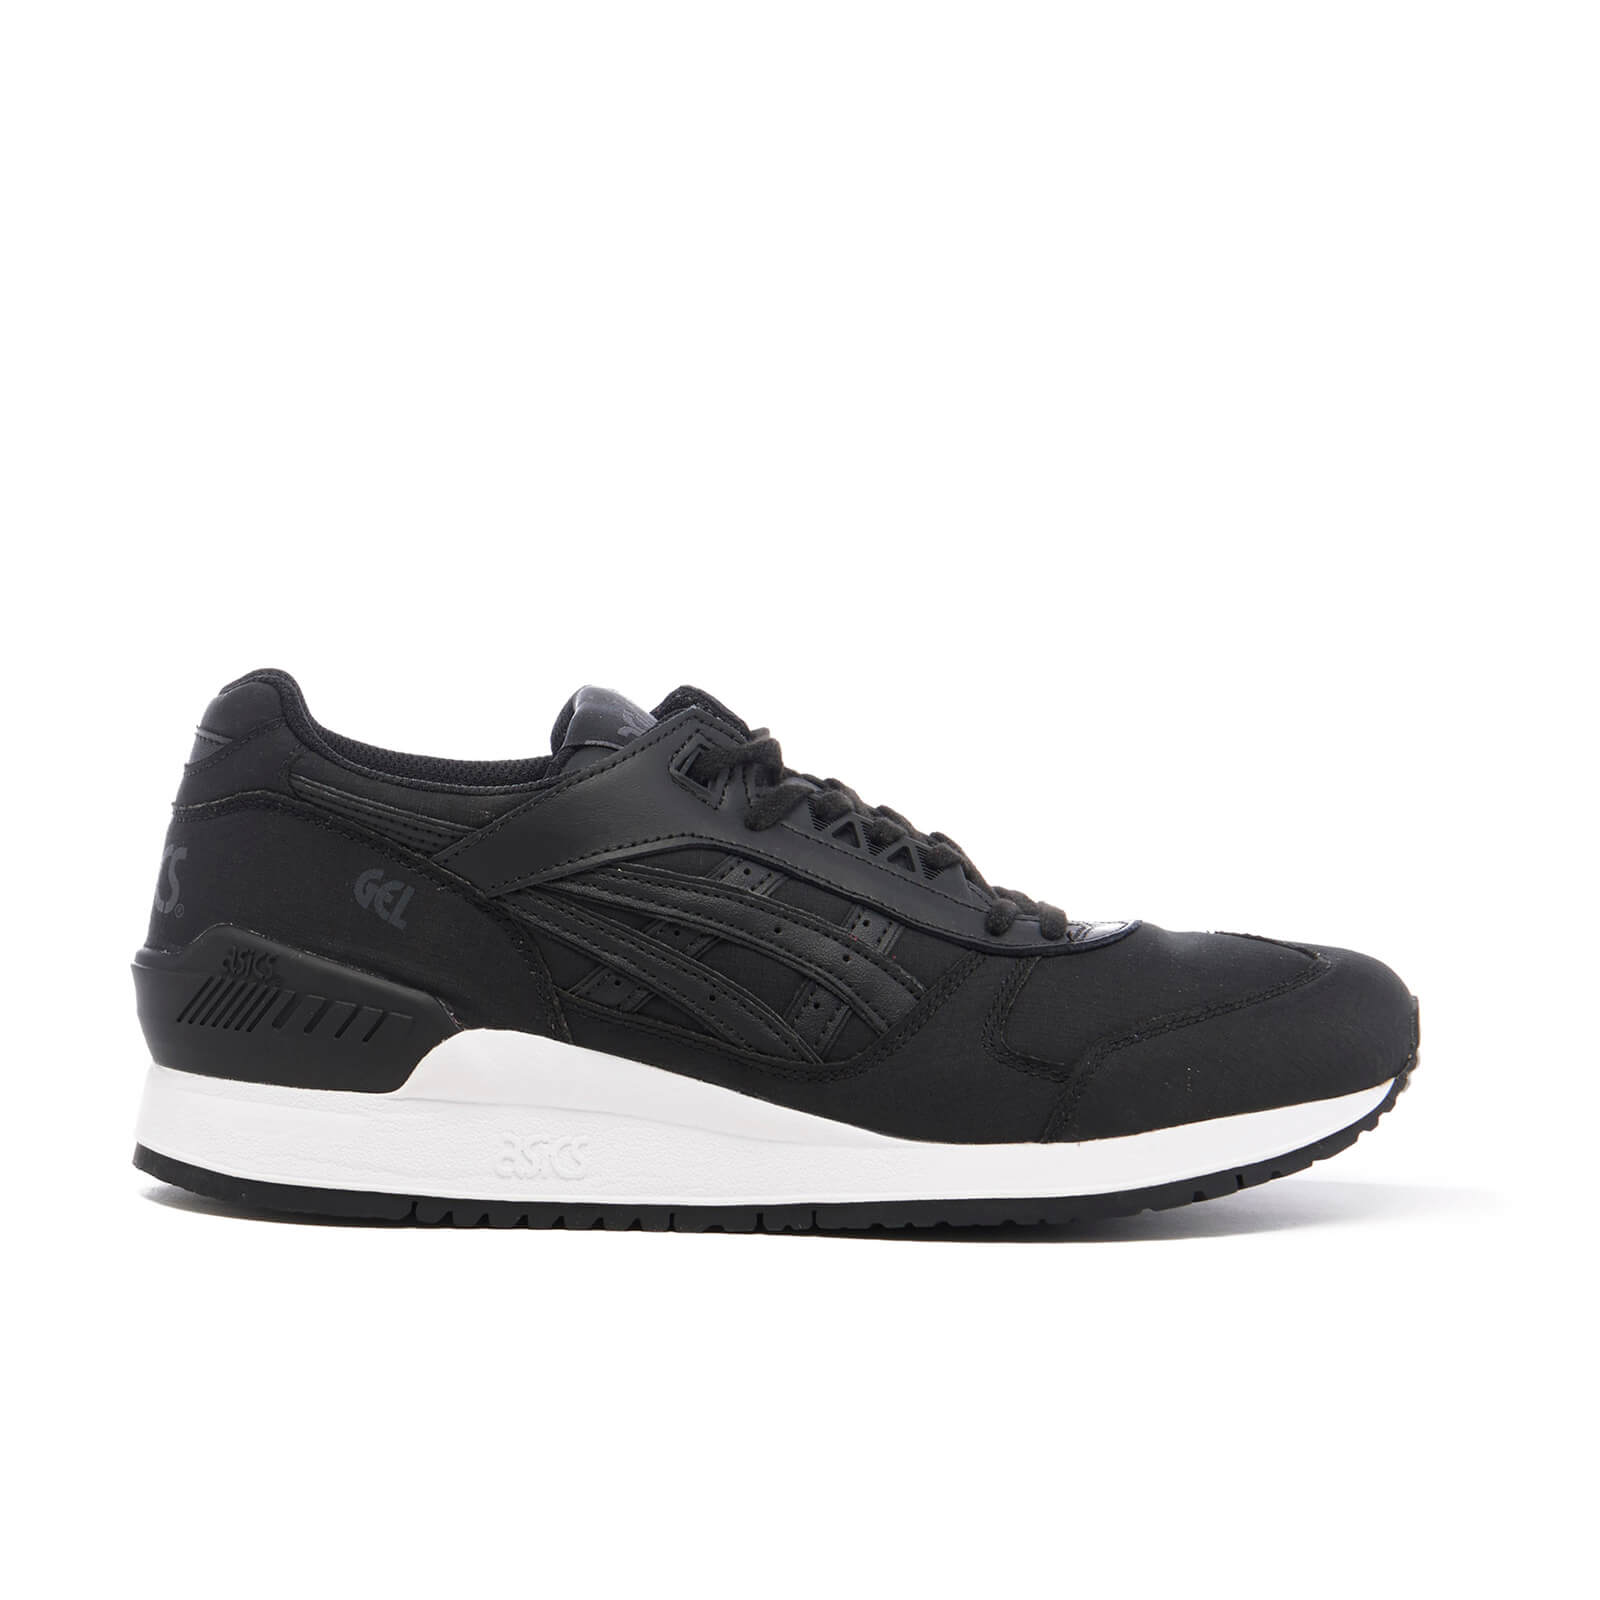 c02aa8175c54 Asics Lifestyle Men s Gel-Respector Ripstop Pack Trainers - Black - Free UK  Delivery over £50